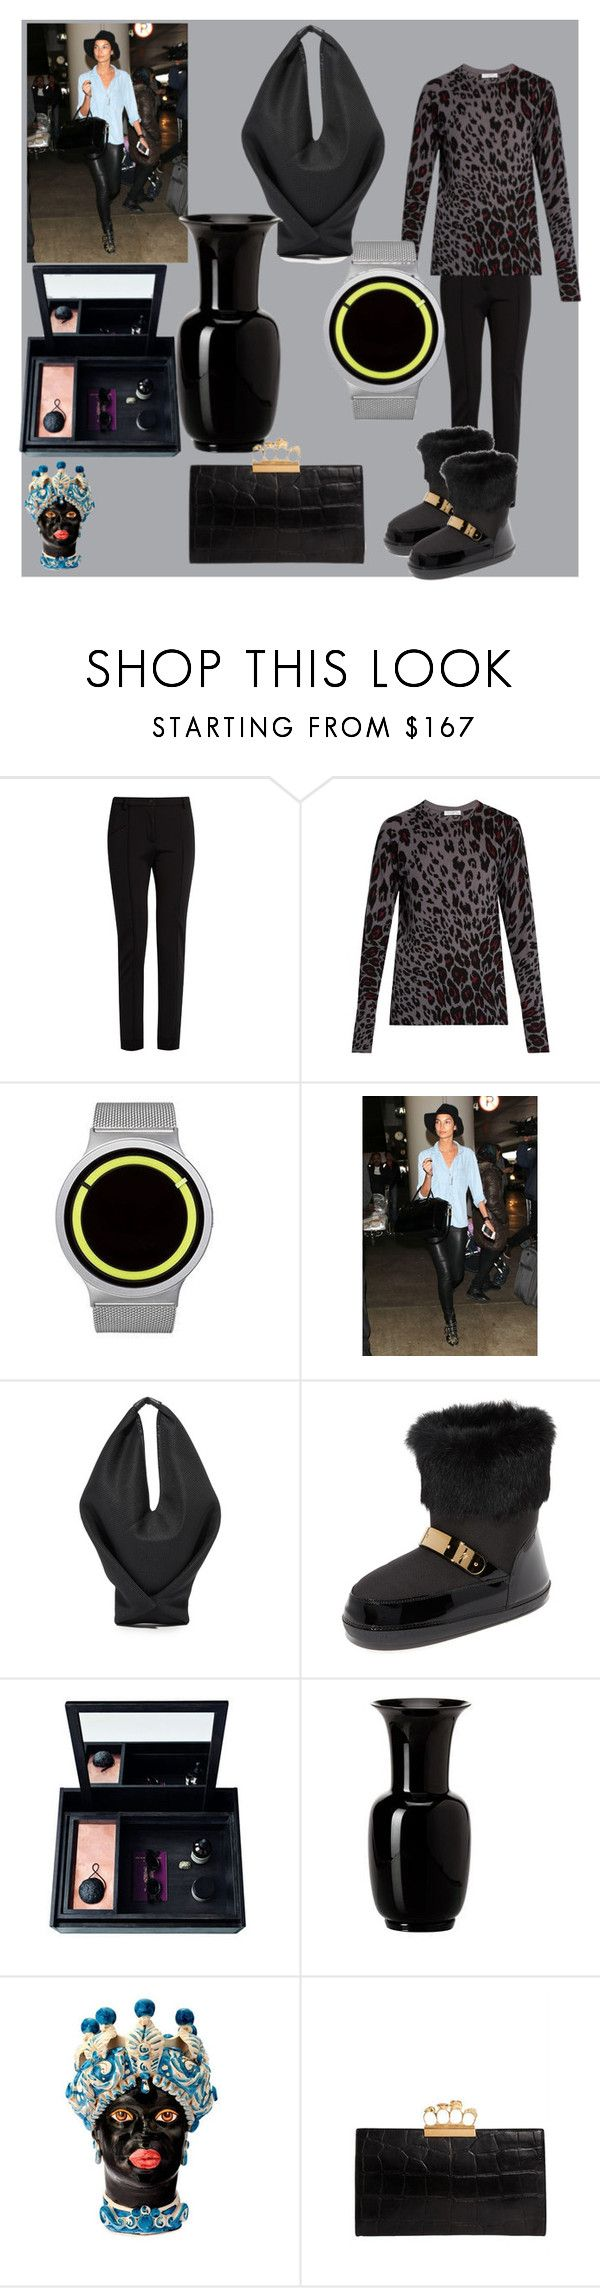 """""""set sale offer"""" by denisee-denisee ❤ liked on Polyvore featuring Fendi, Equipment, ZIIIRO, MM6 Maison Margiela, Giuseppe Zanotti, Nomess, Venini, Sicily & More, Alexander McQueen and vintage"""